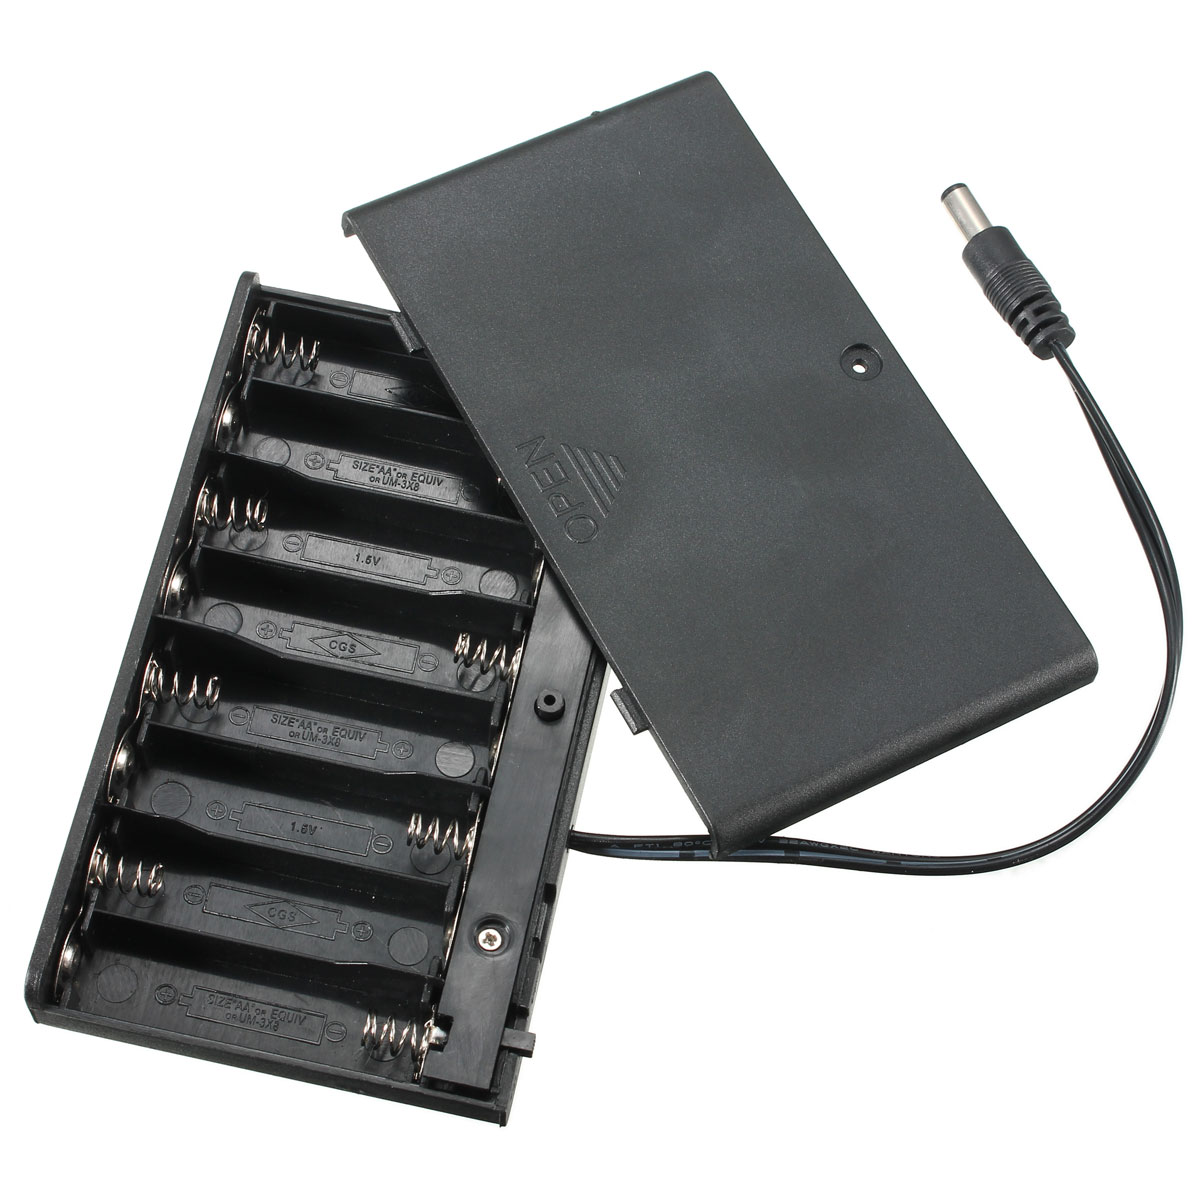 Hot Sale Plastic 8x AA 2A Battery Clip Holder 12V Storage Case Enclosed Box with Wire Leads and ON/OFF Switch